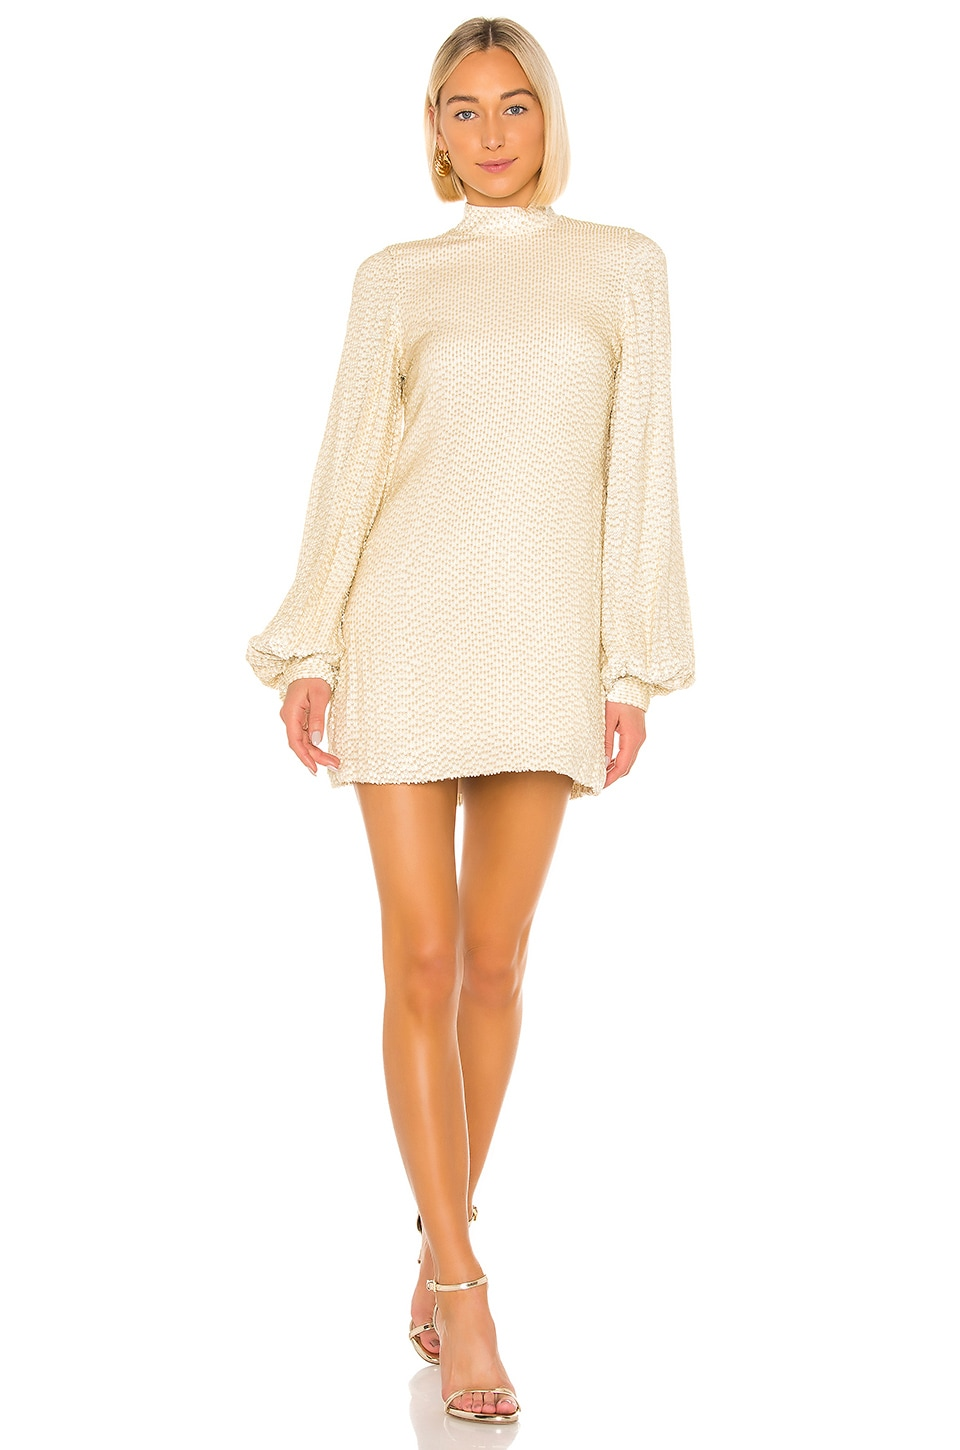 Alexis Alyna Dress in Ivory